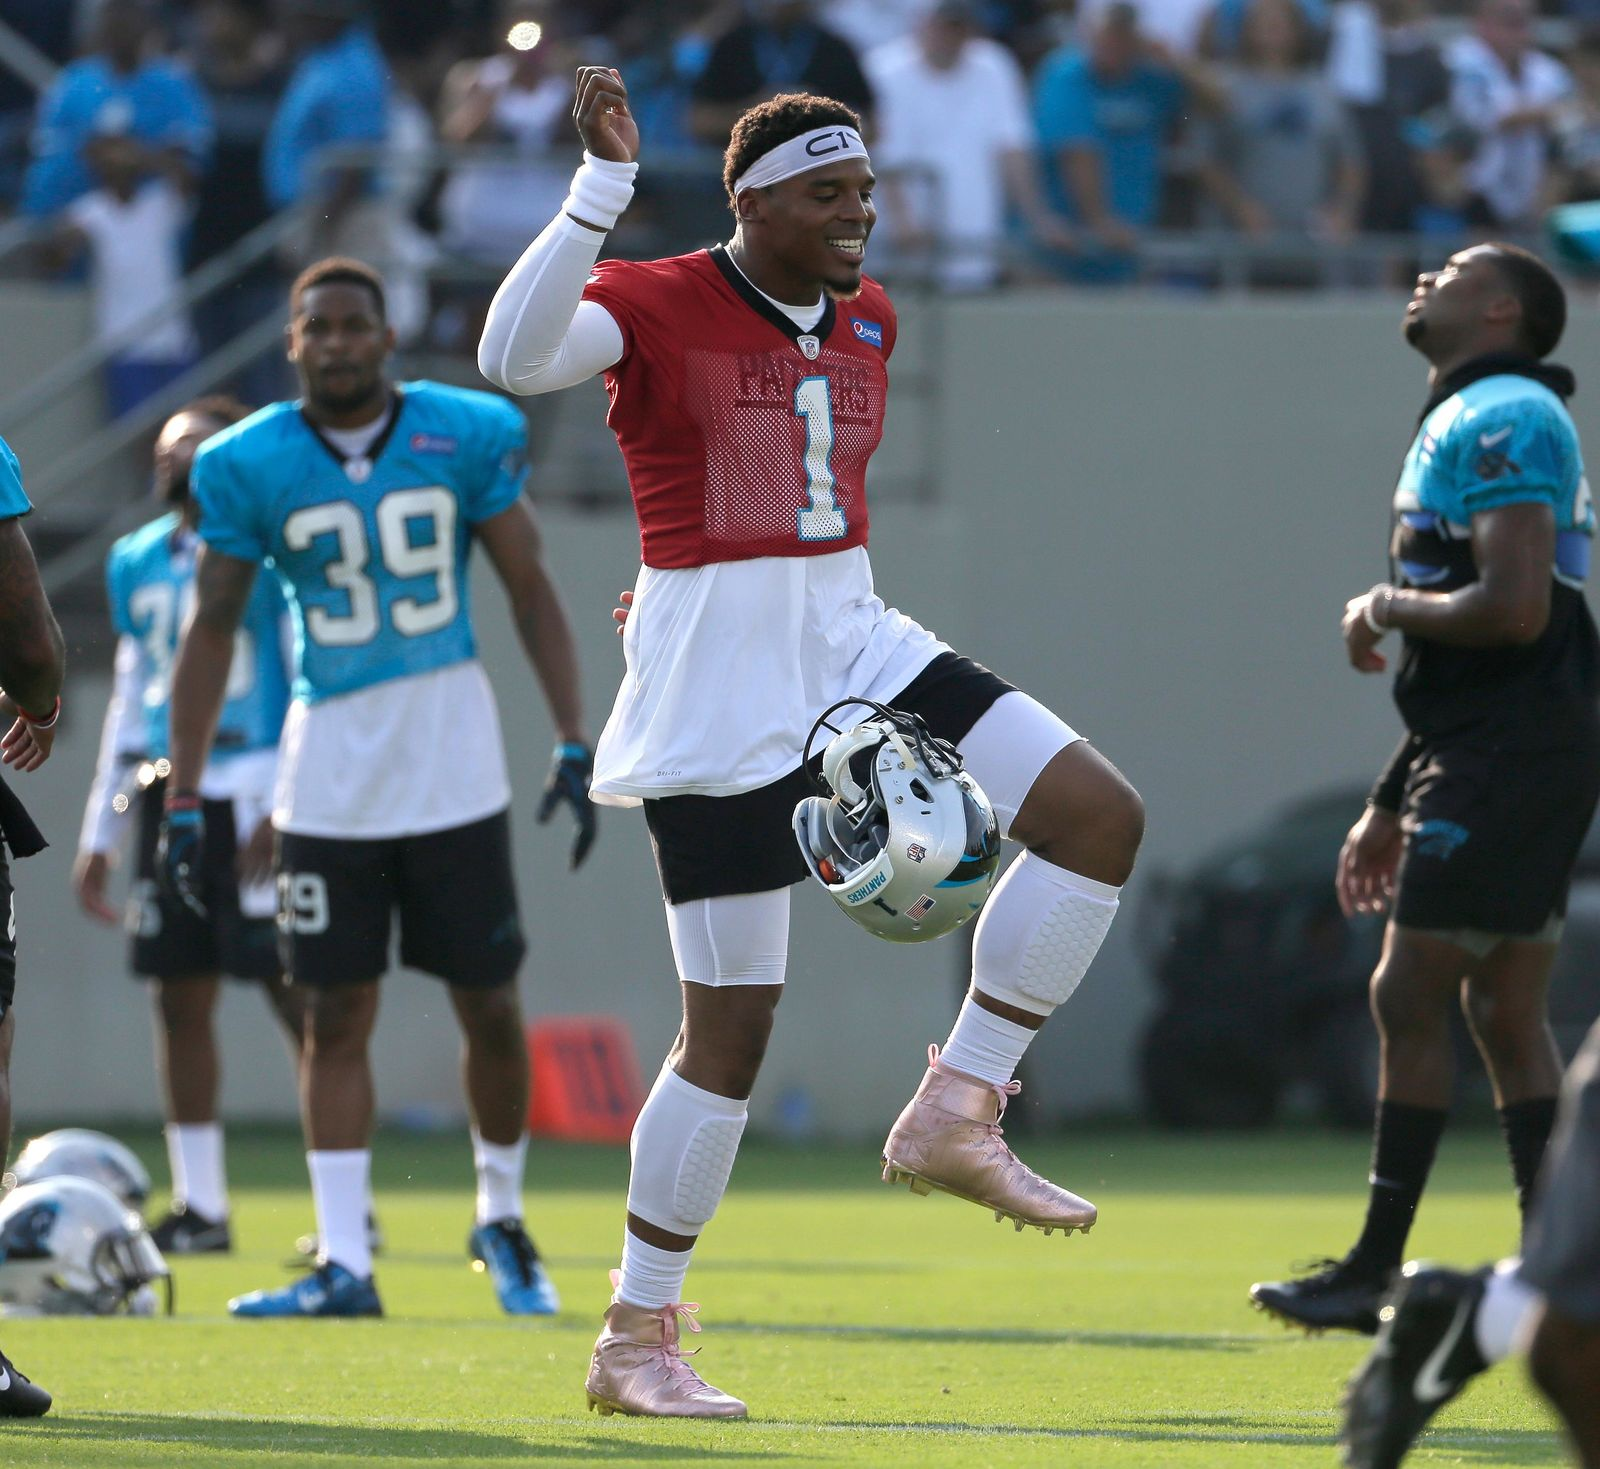 Carolina Panthers' Cam Newton (1) dances as players warm up during practice at training camp at Wofford College in Spartanburg, S.C., Wednesday, July 26, 2017. (AP Photo/Chuck Burton)